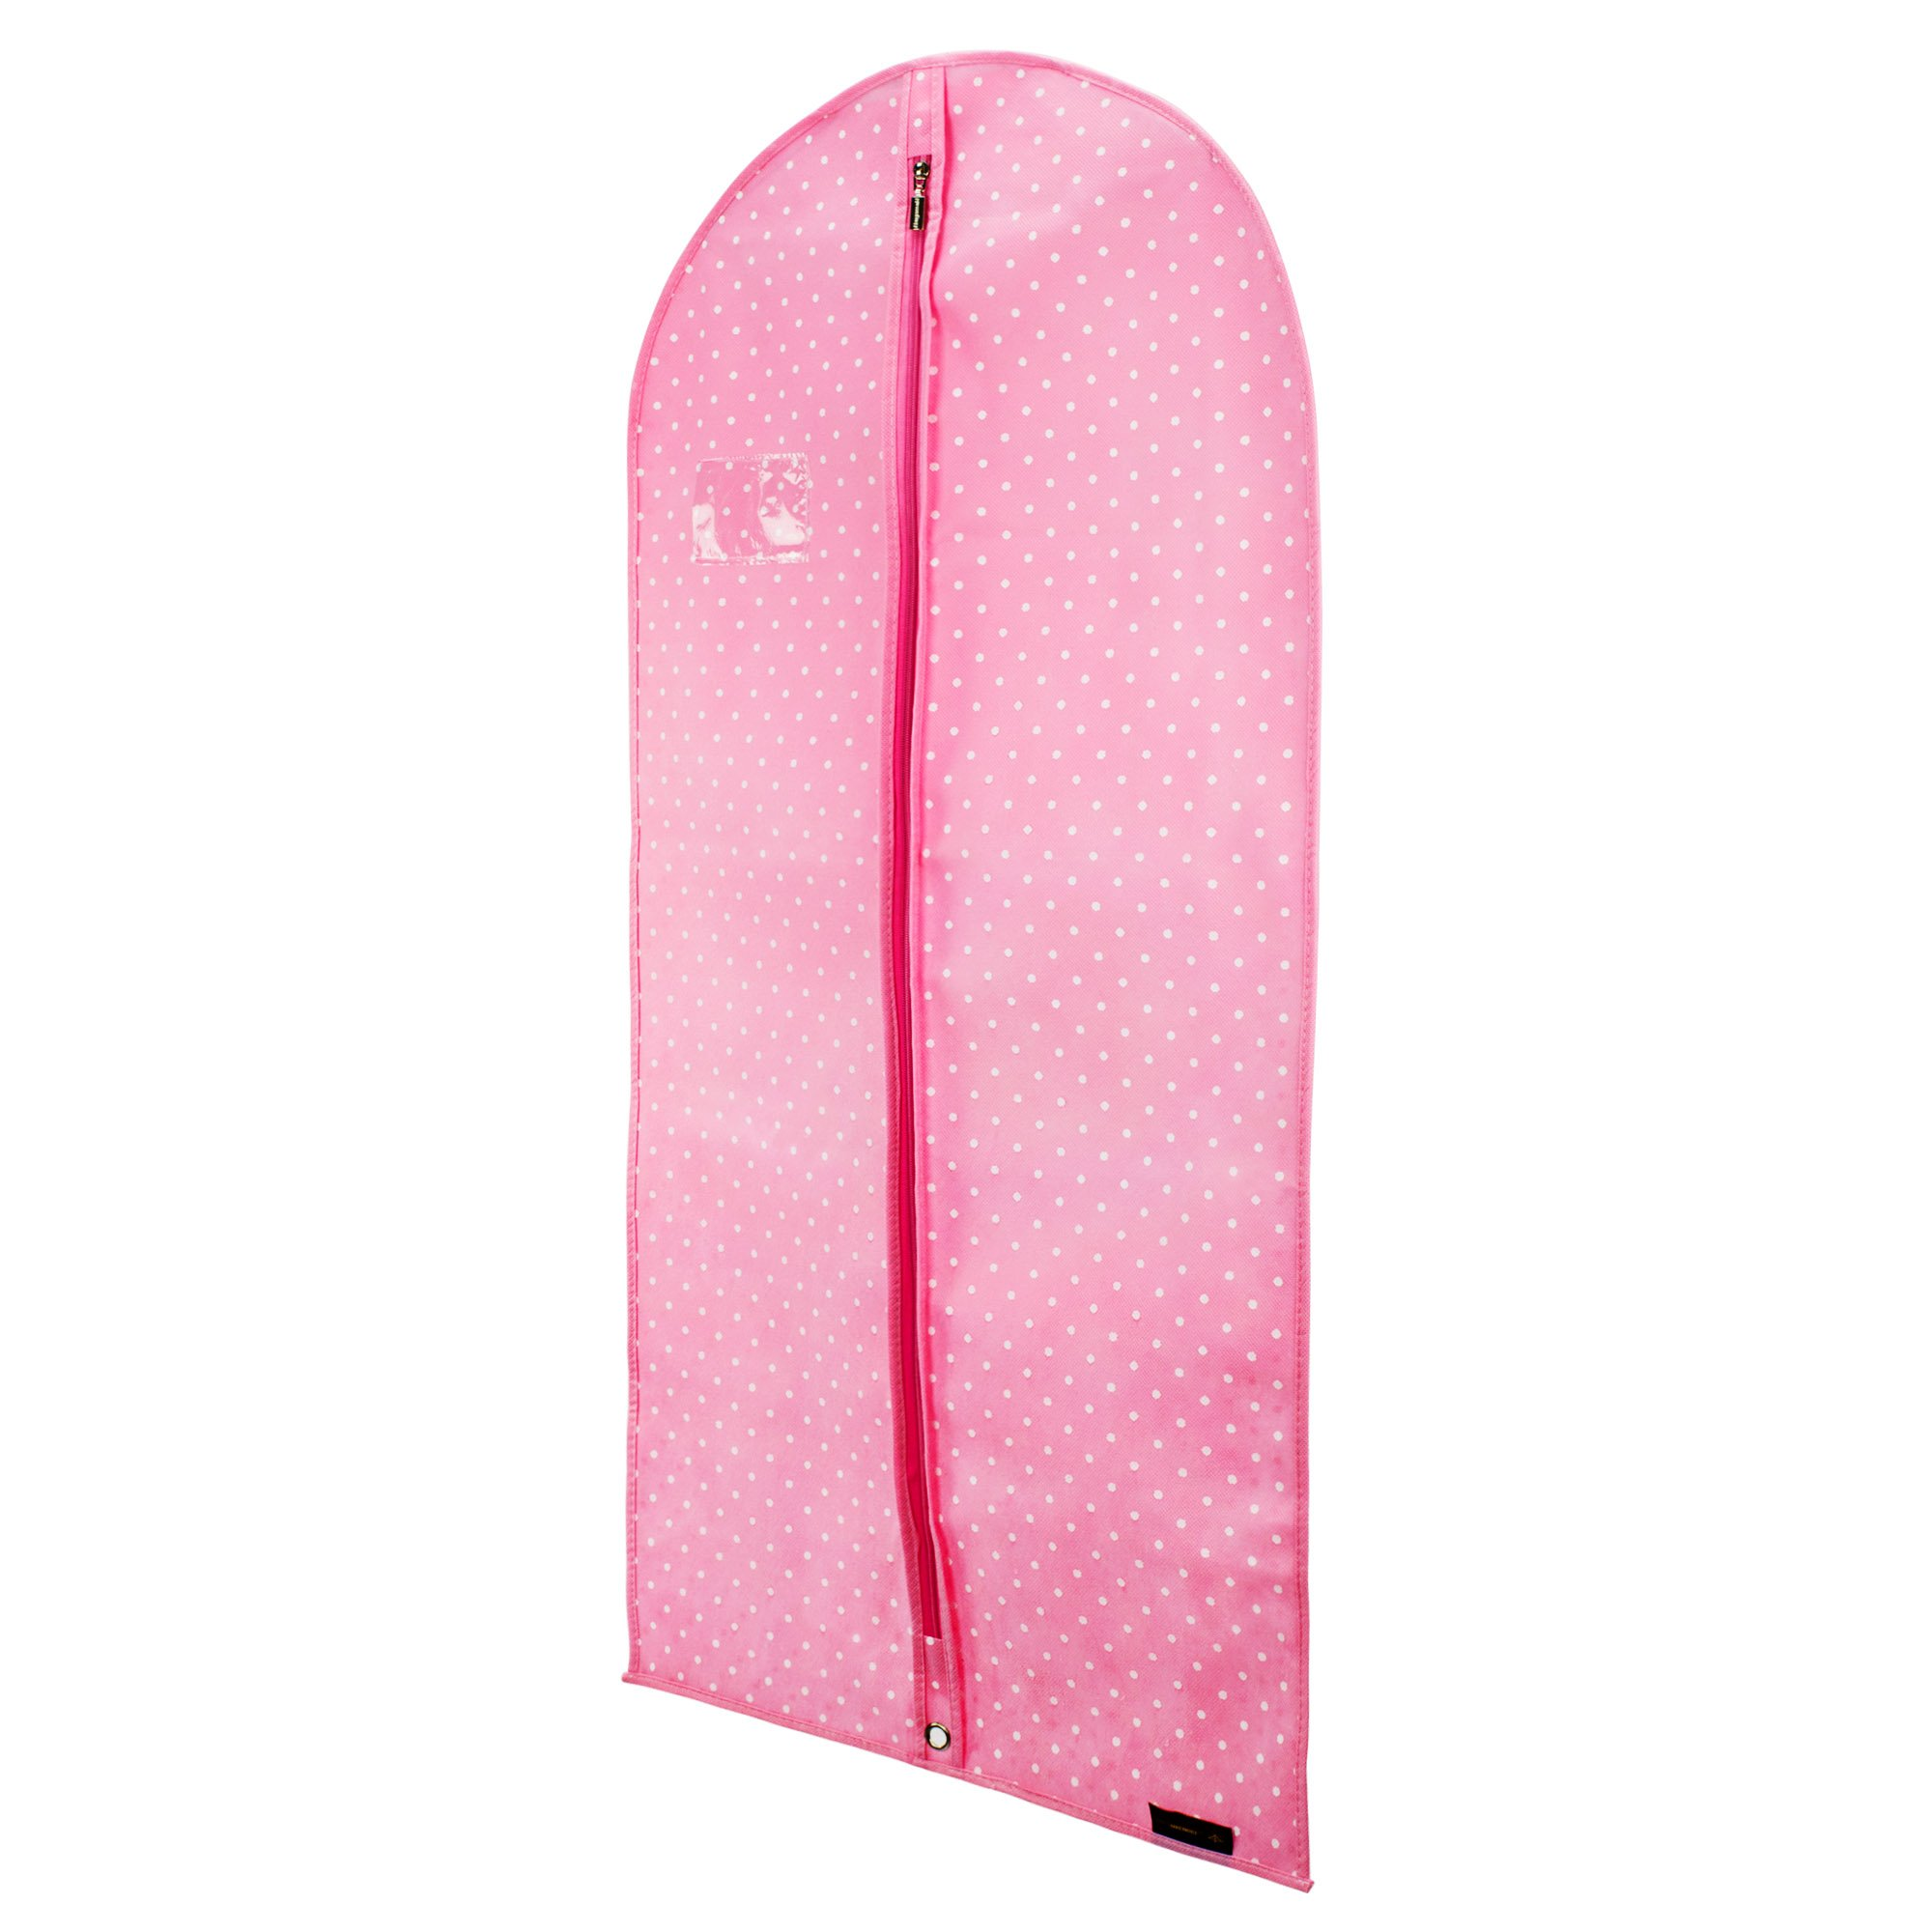 HANGERWORLD Pink 45inch Polka Dot Breathable Zipped Garment Dress Suit Cover Clothes Travel Bag Protectors by HANGERWORLD (Image #2)